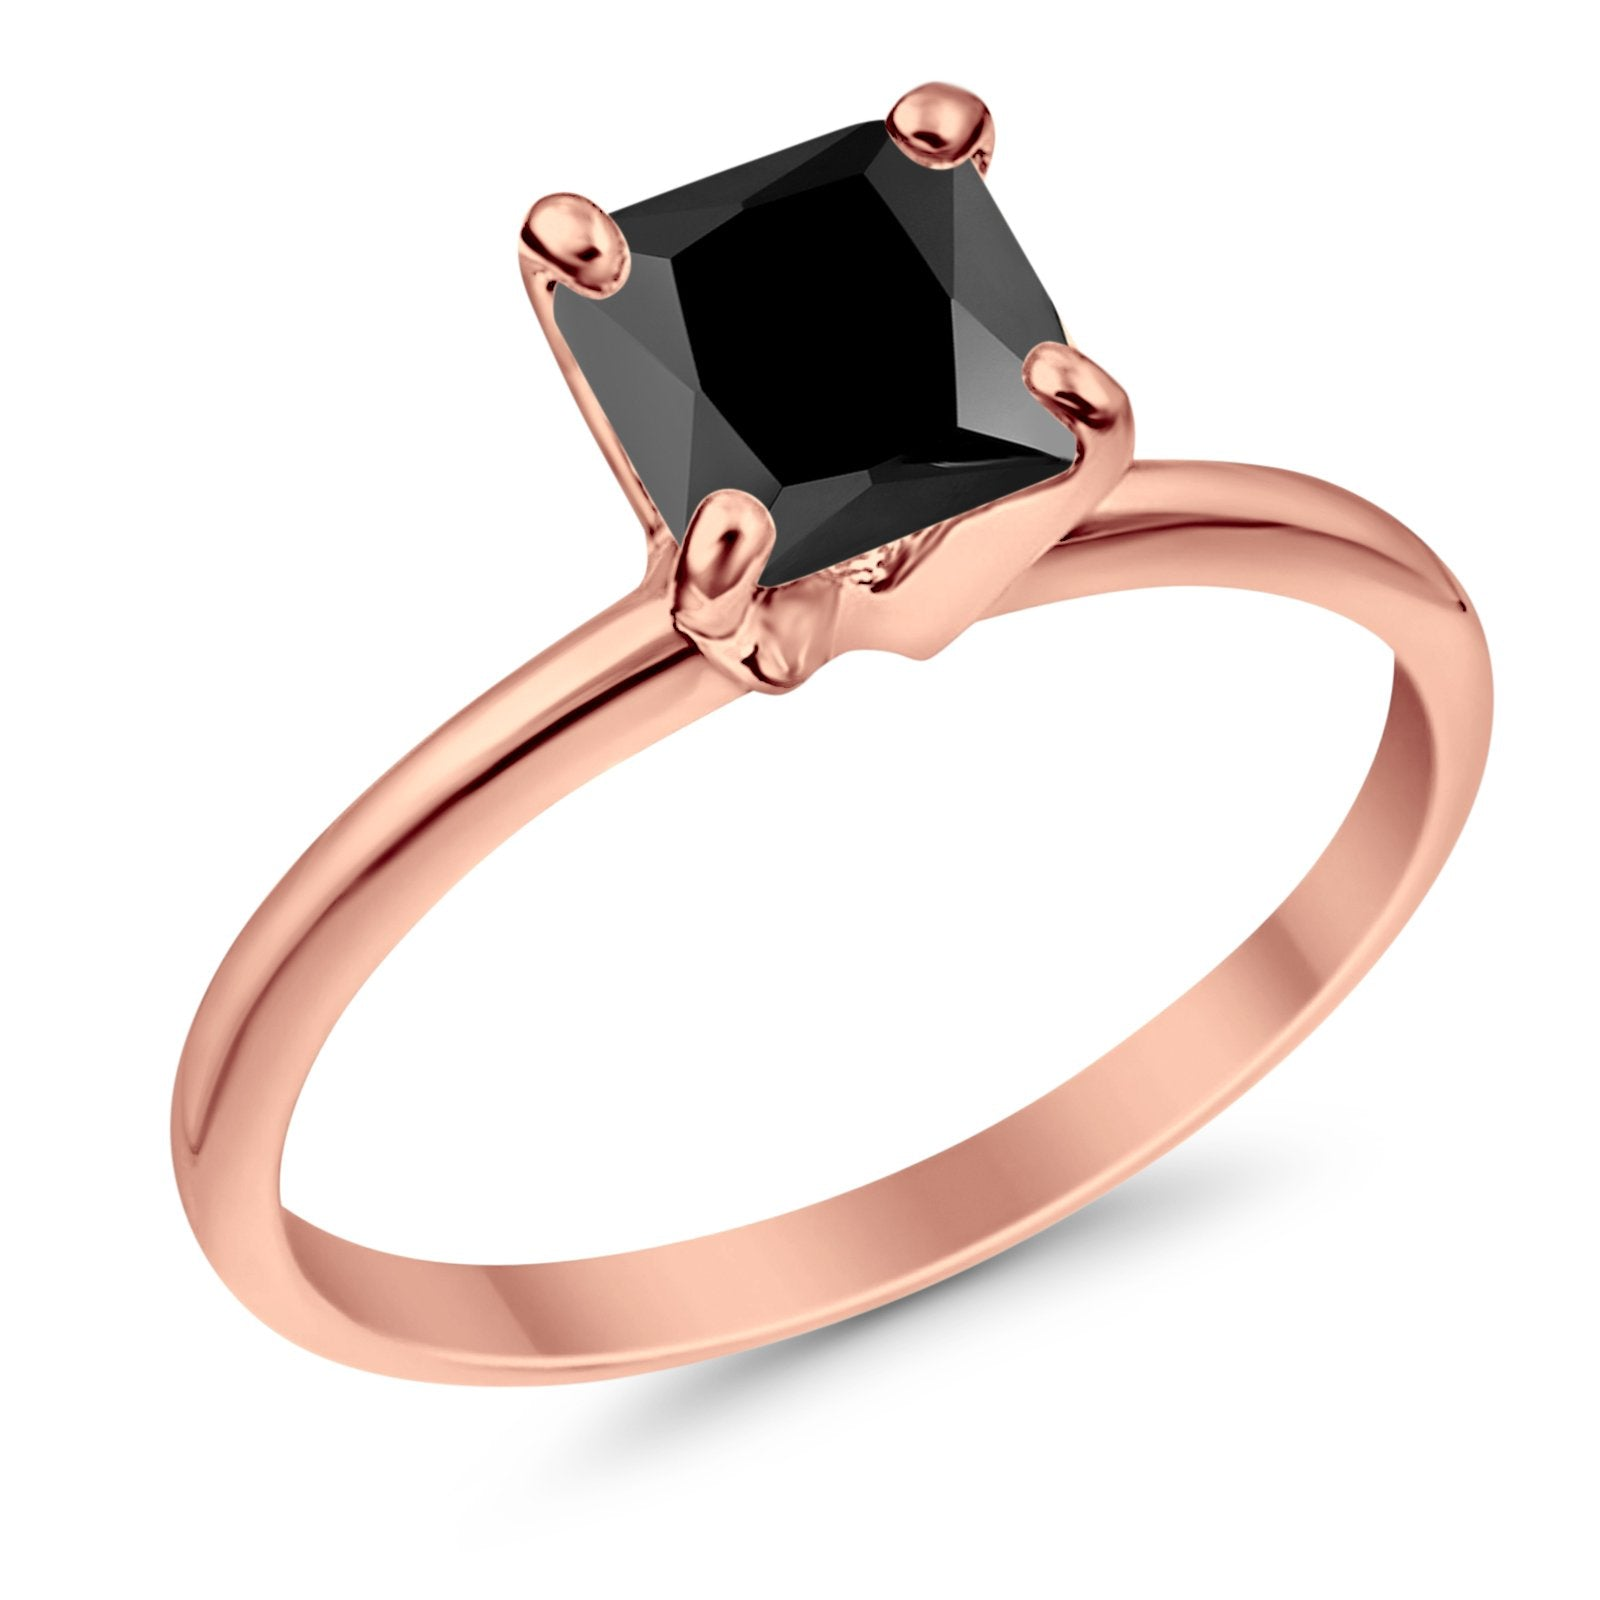 Solitaire Wedding Ring Princess Cut Simulated Black Cubic Zirconia Rose Tone 925 Sterling Silver